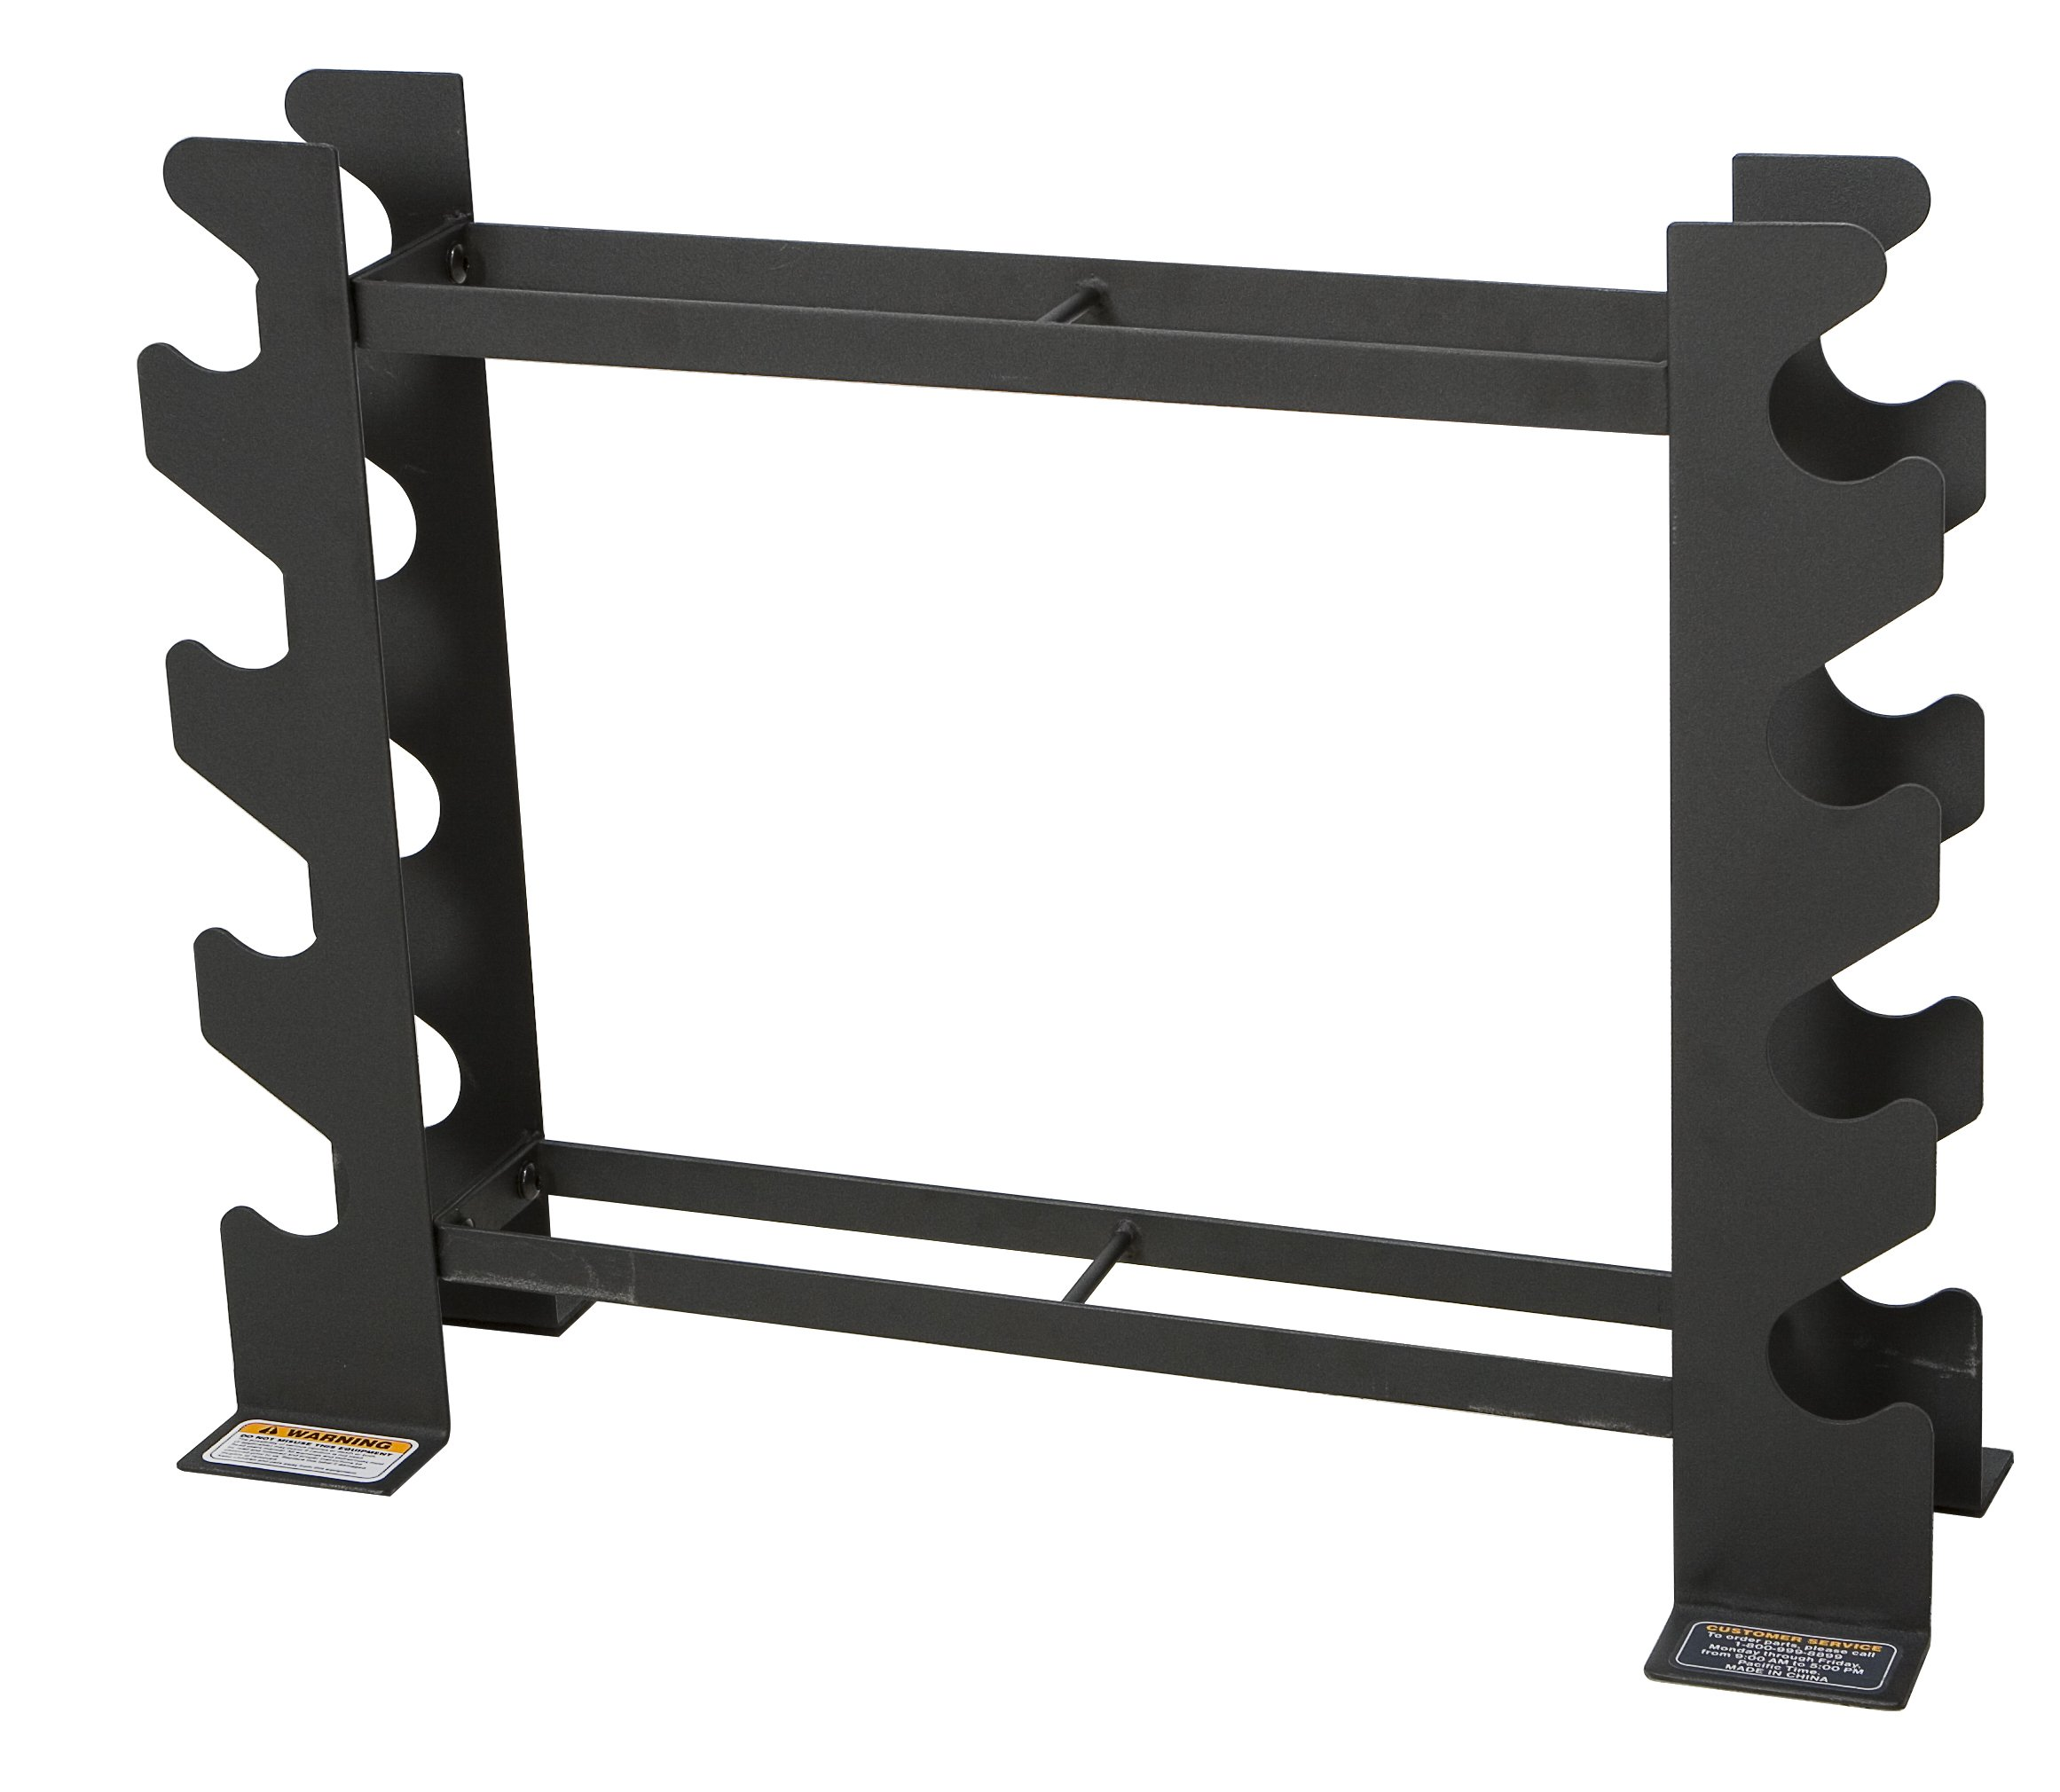 Marcy Compact Dumbbell Rack Free Weight Stand for Home Gym DBR-56 by Marcy